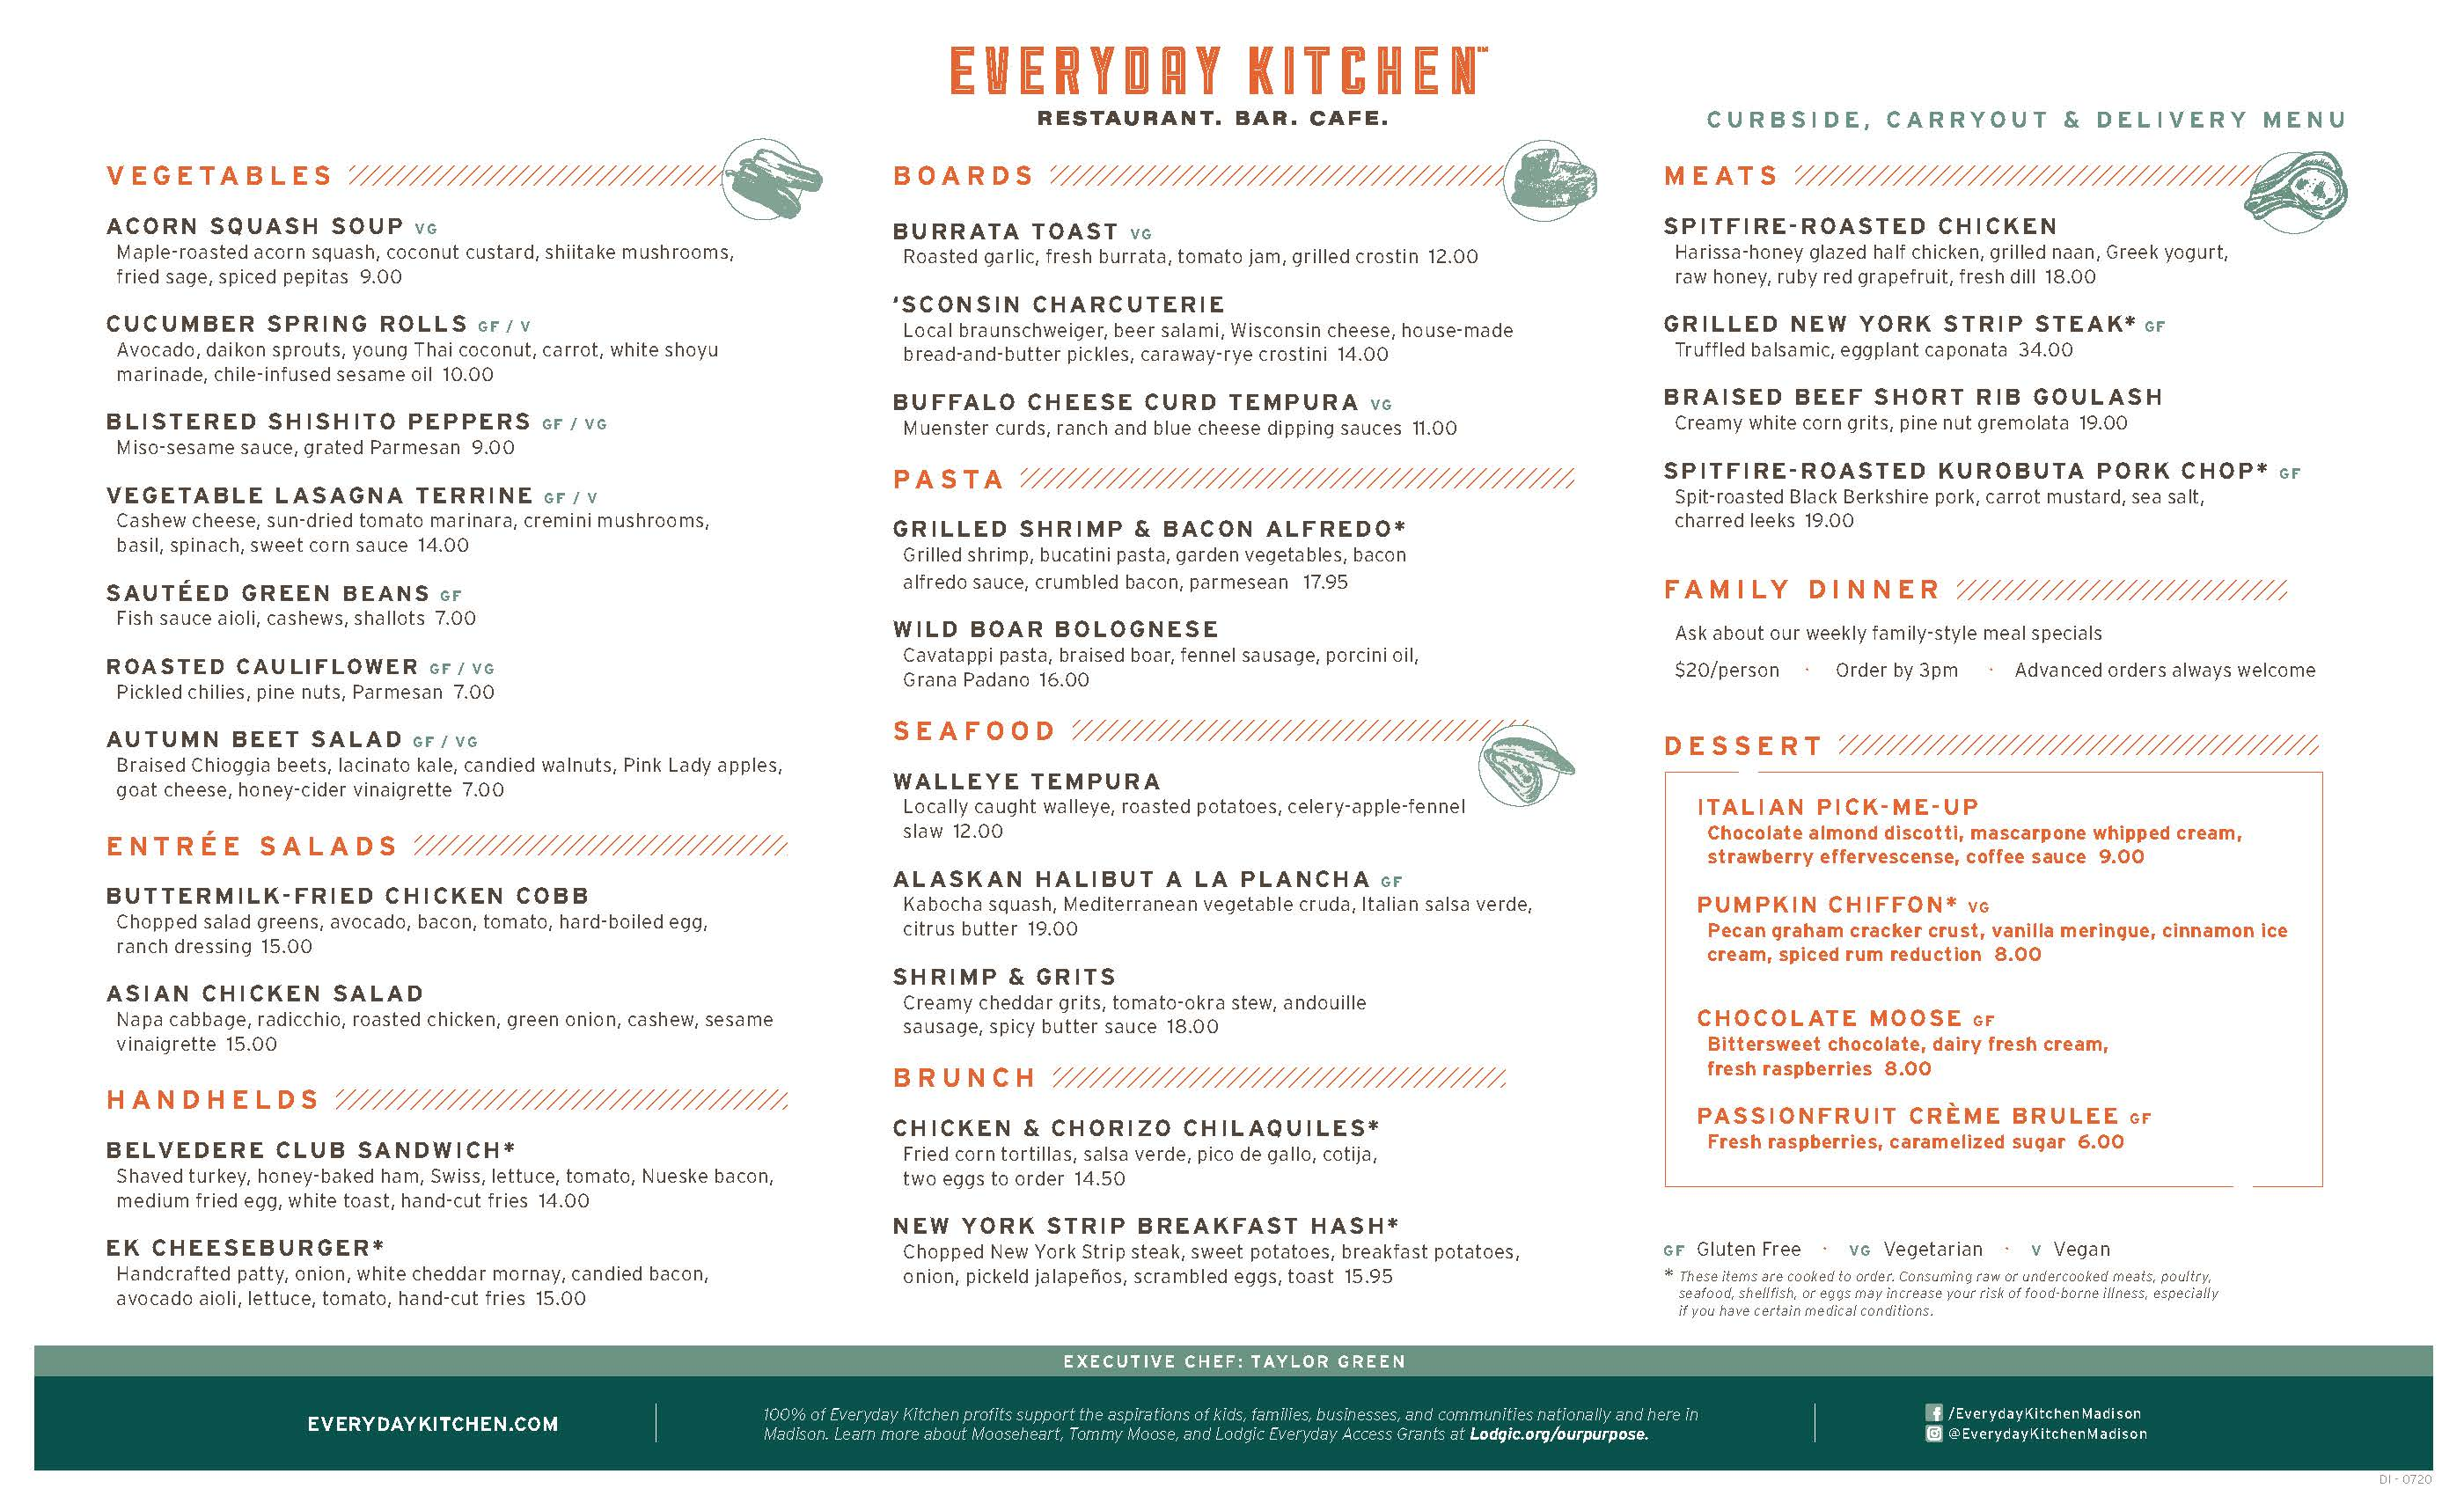 ALL DAY CURBSIDE CARRYOUT DELIVERY MENU